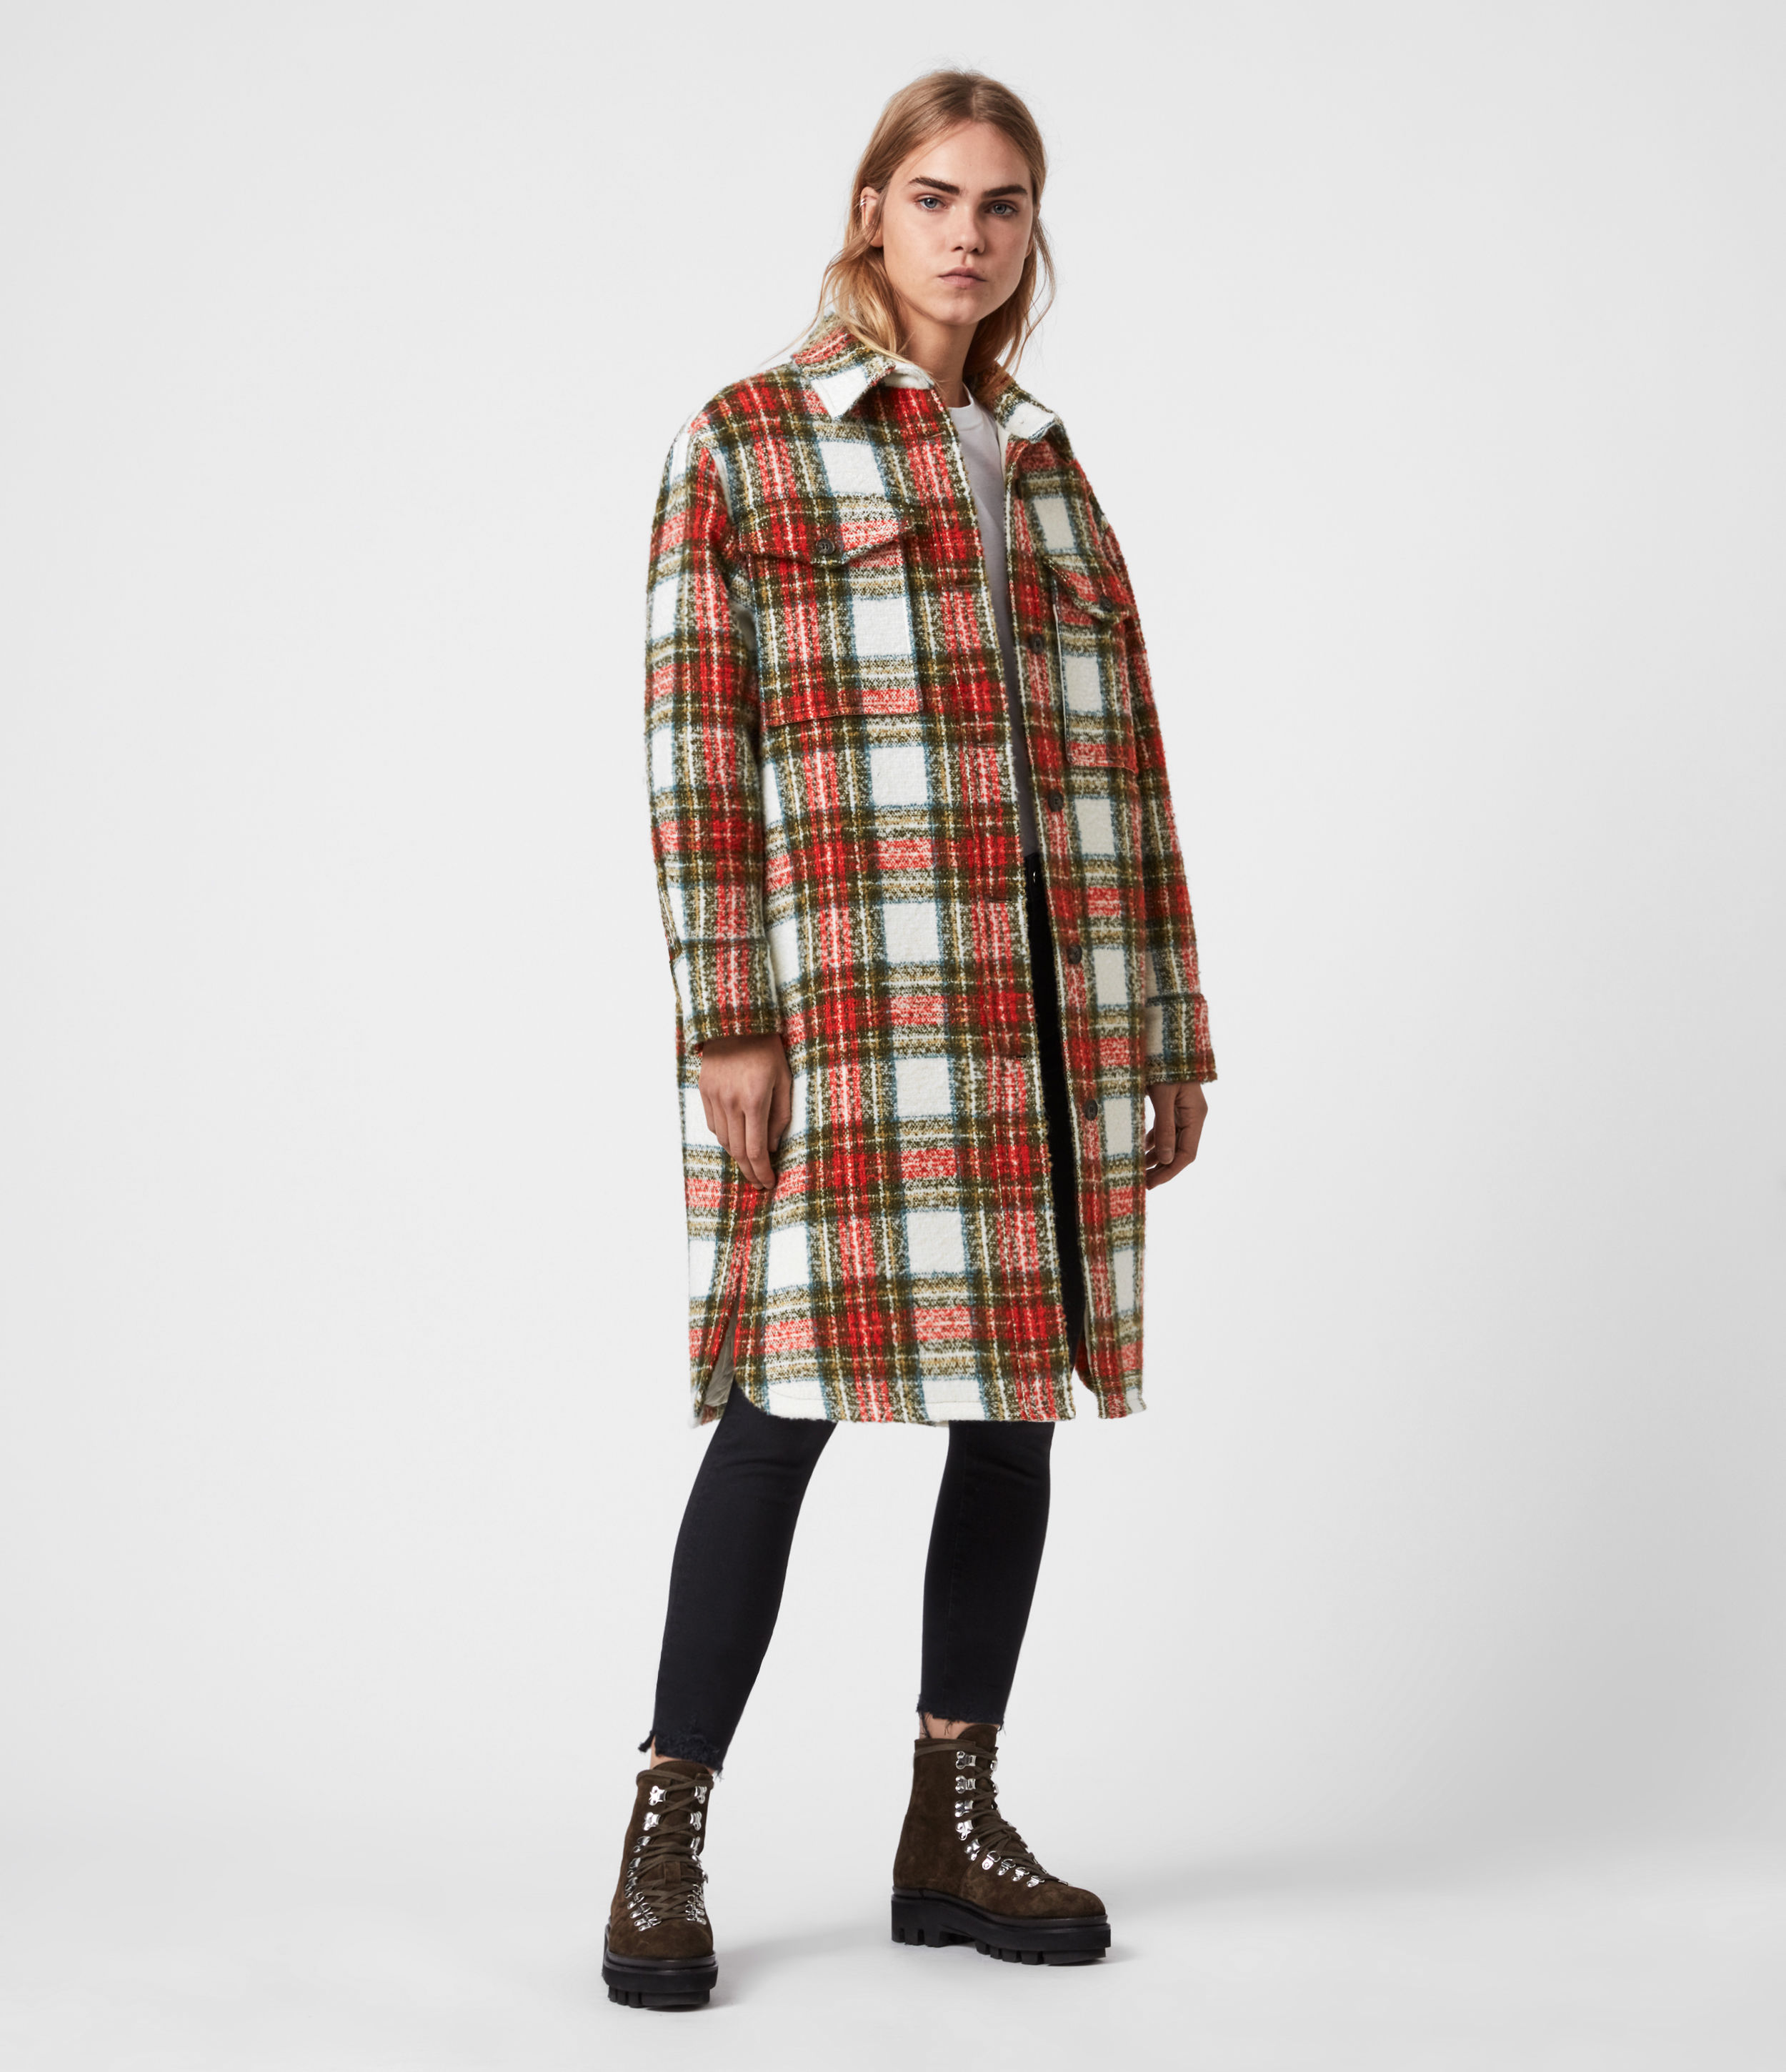 AllSaints Women's Wool Check Classic Nia Blend Coat, White, Red and Orange, Size: 8